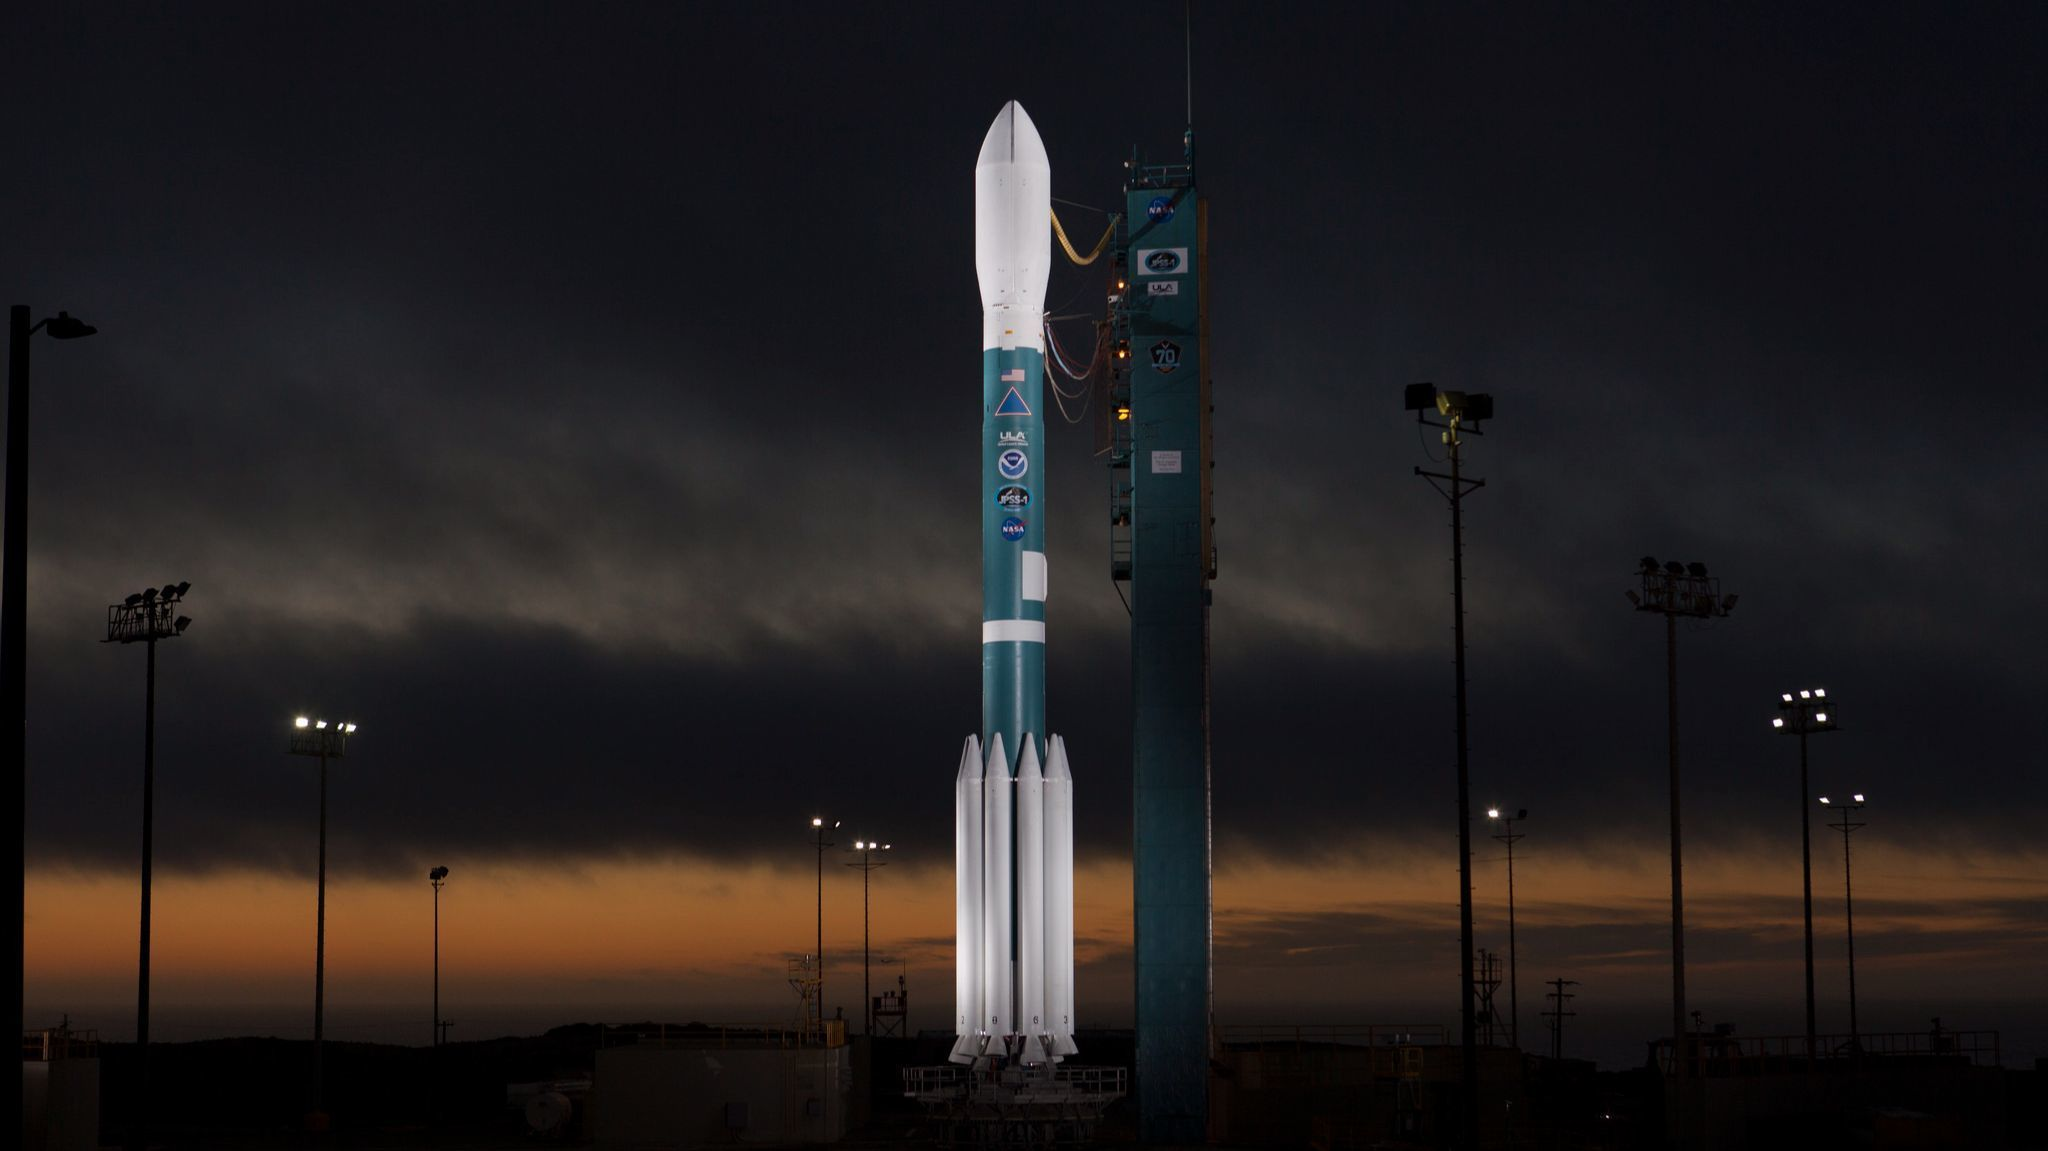 The Delta II rocket set to launch the JPSS-1 satellite is illuminated as night falls at Vandenberg Air Force Base. It is scheduled to launch early Wednesday.